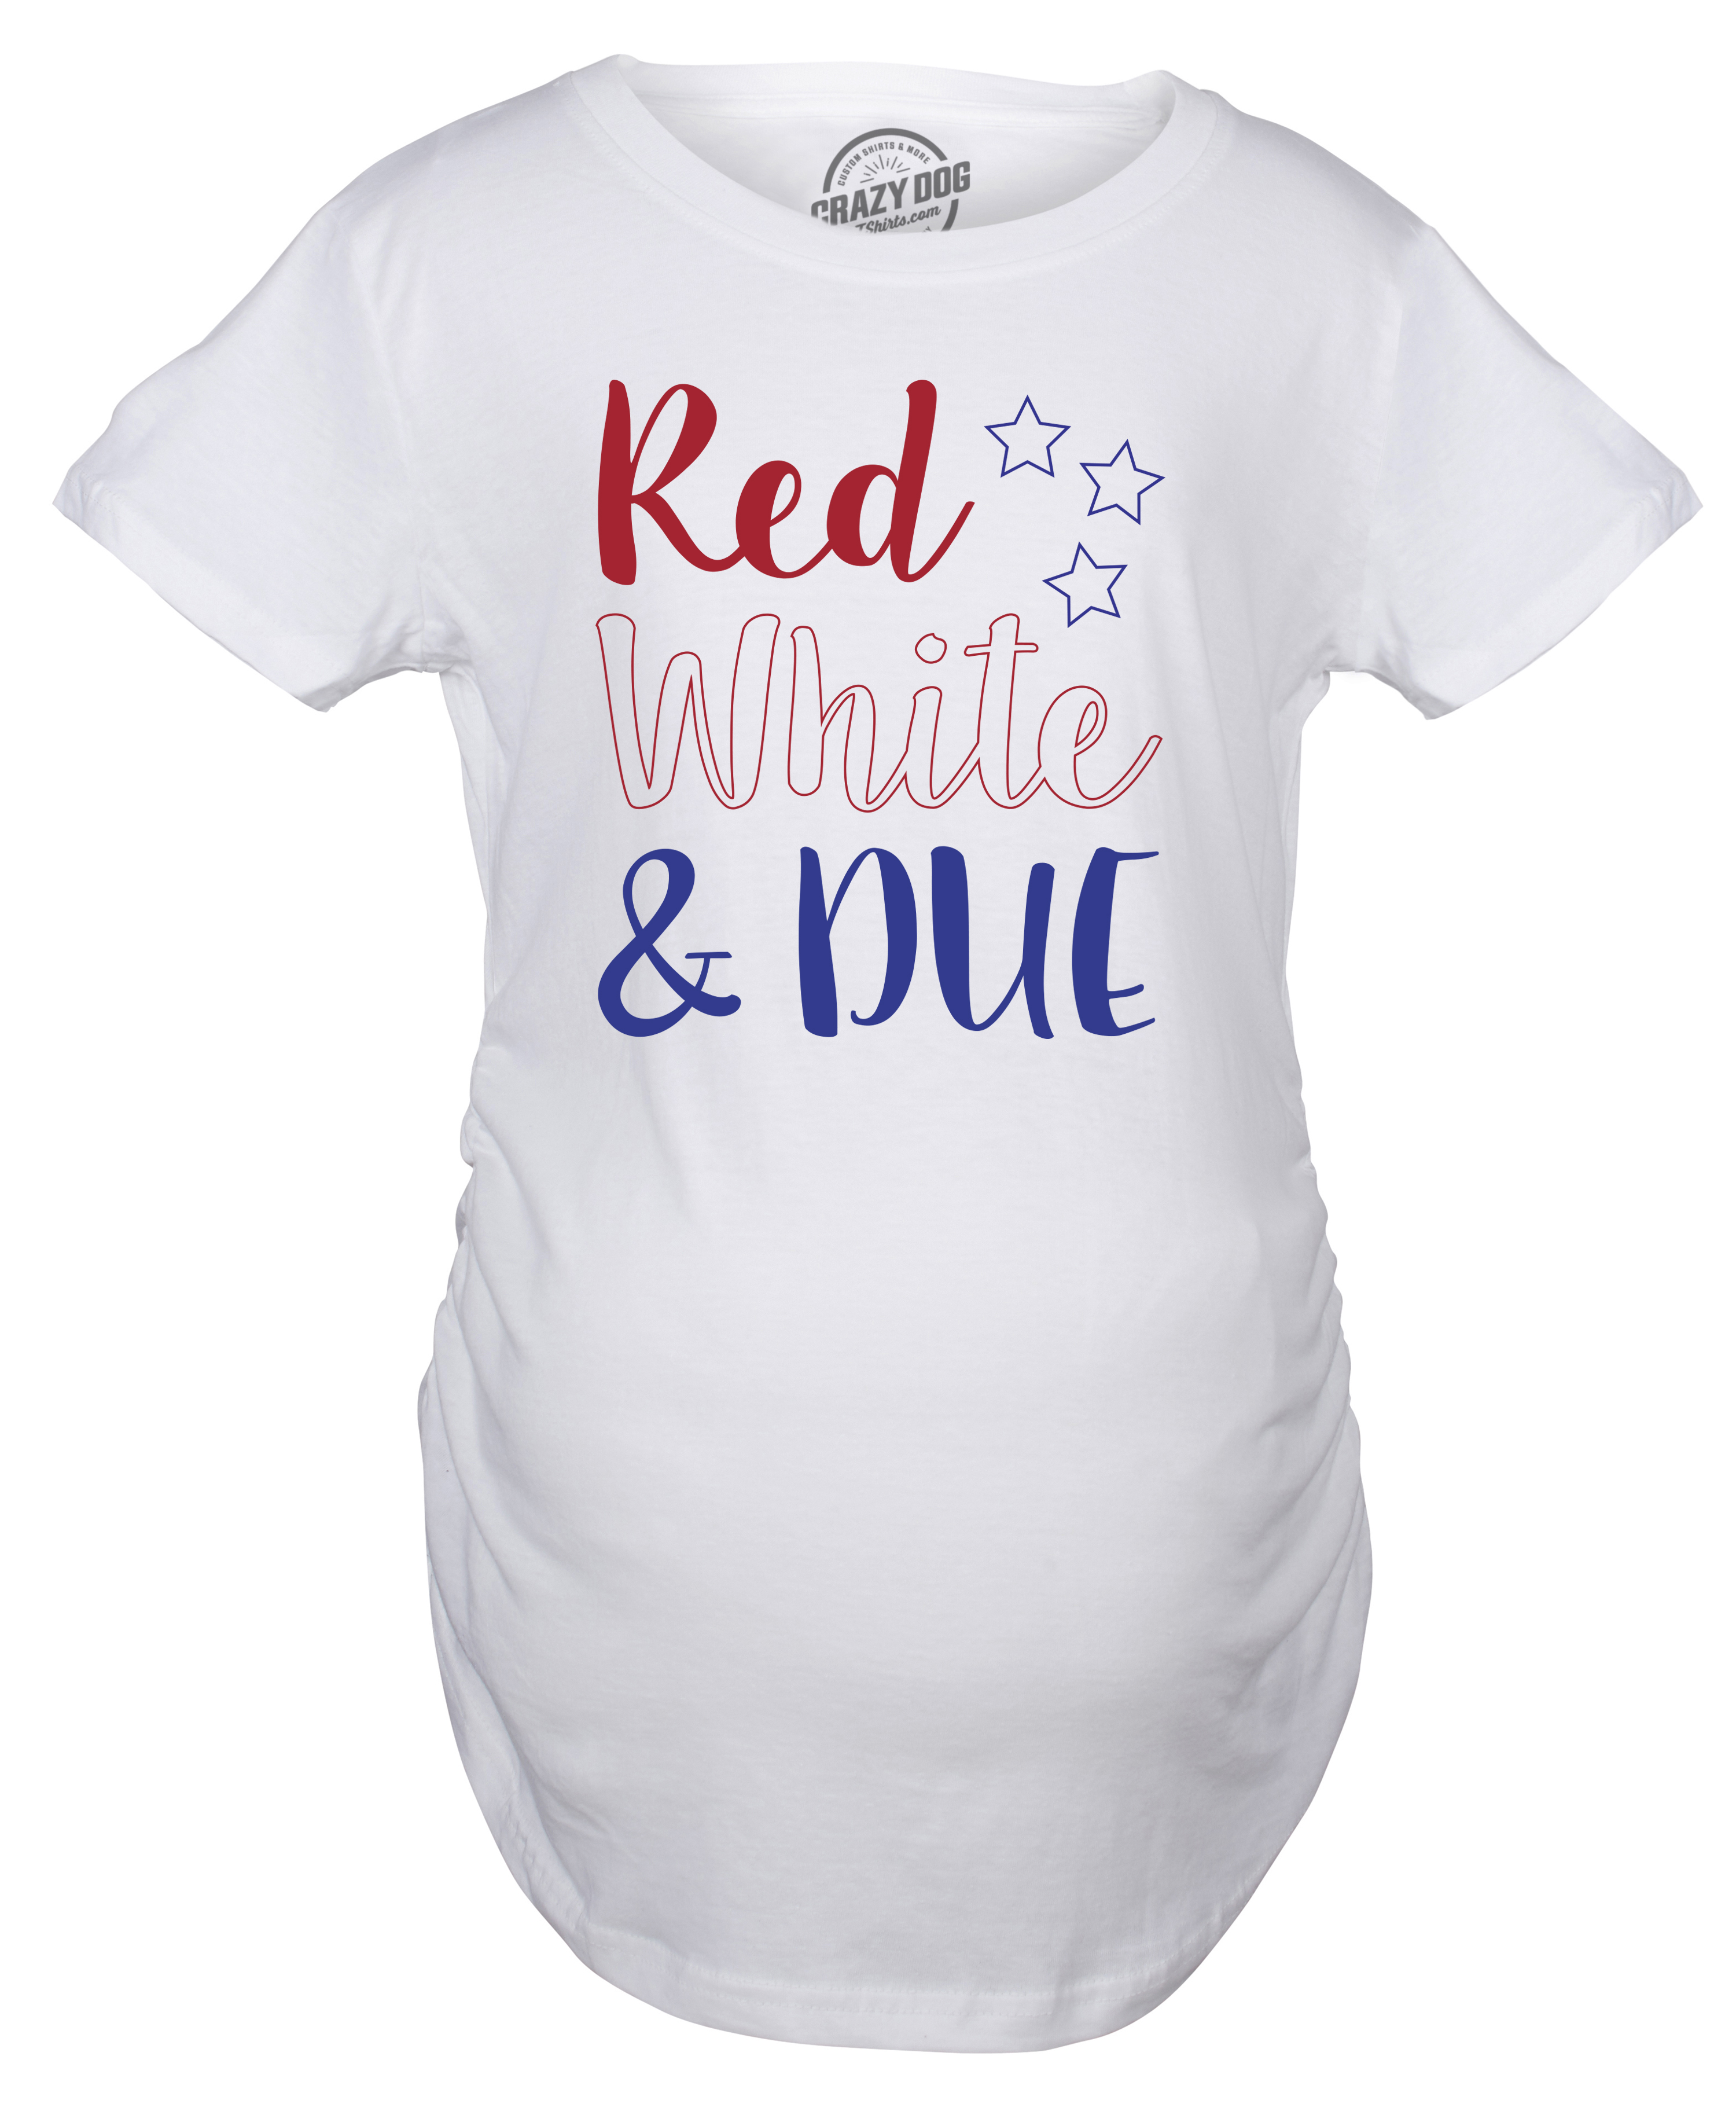 0c695f51 Crazy Dog Tshirts Maternity Red White And Due Pregnancy Tshirt Cute 4th Of  July Baby Tee